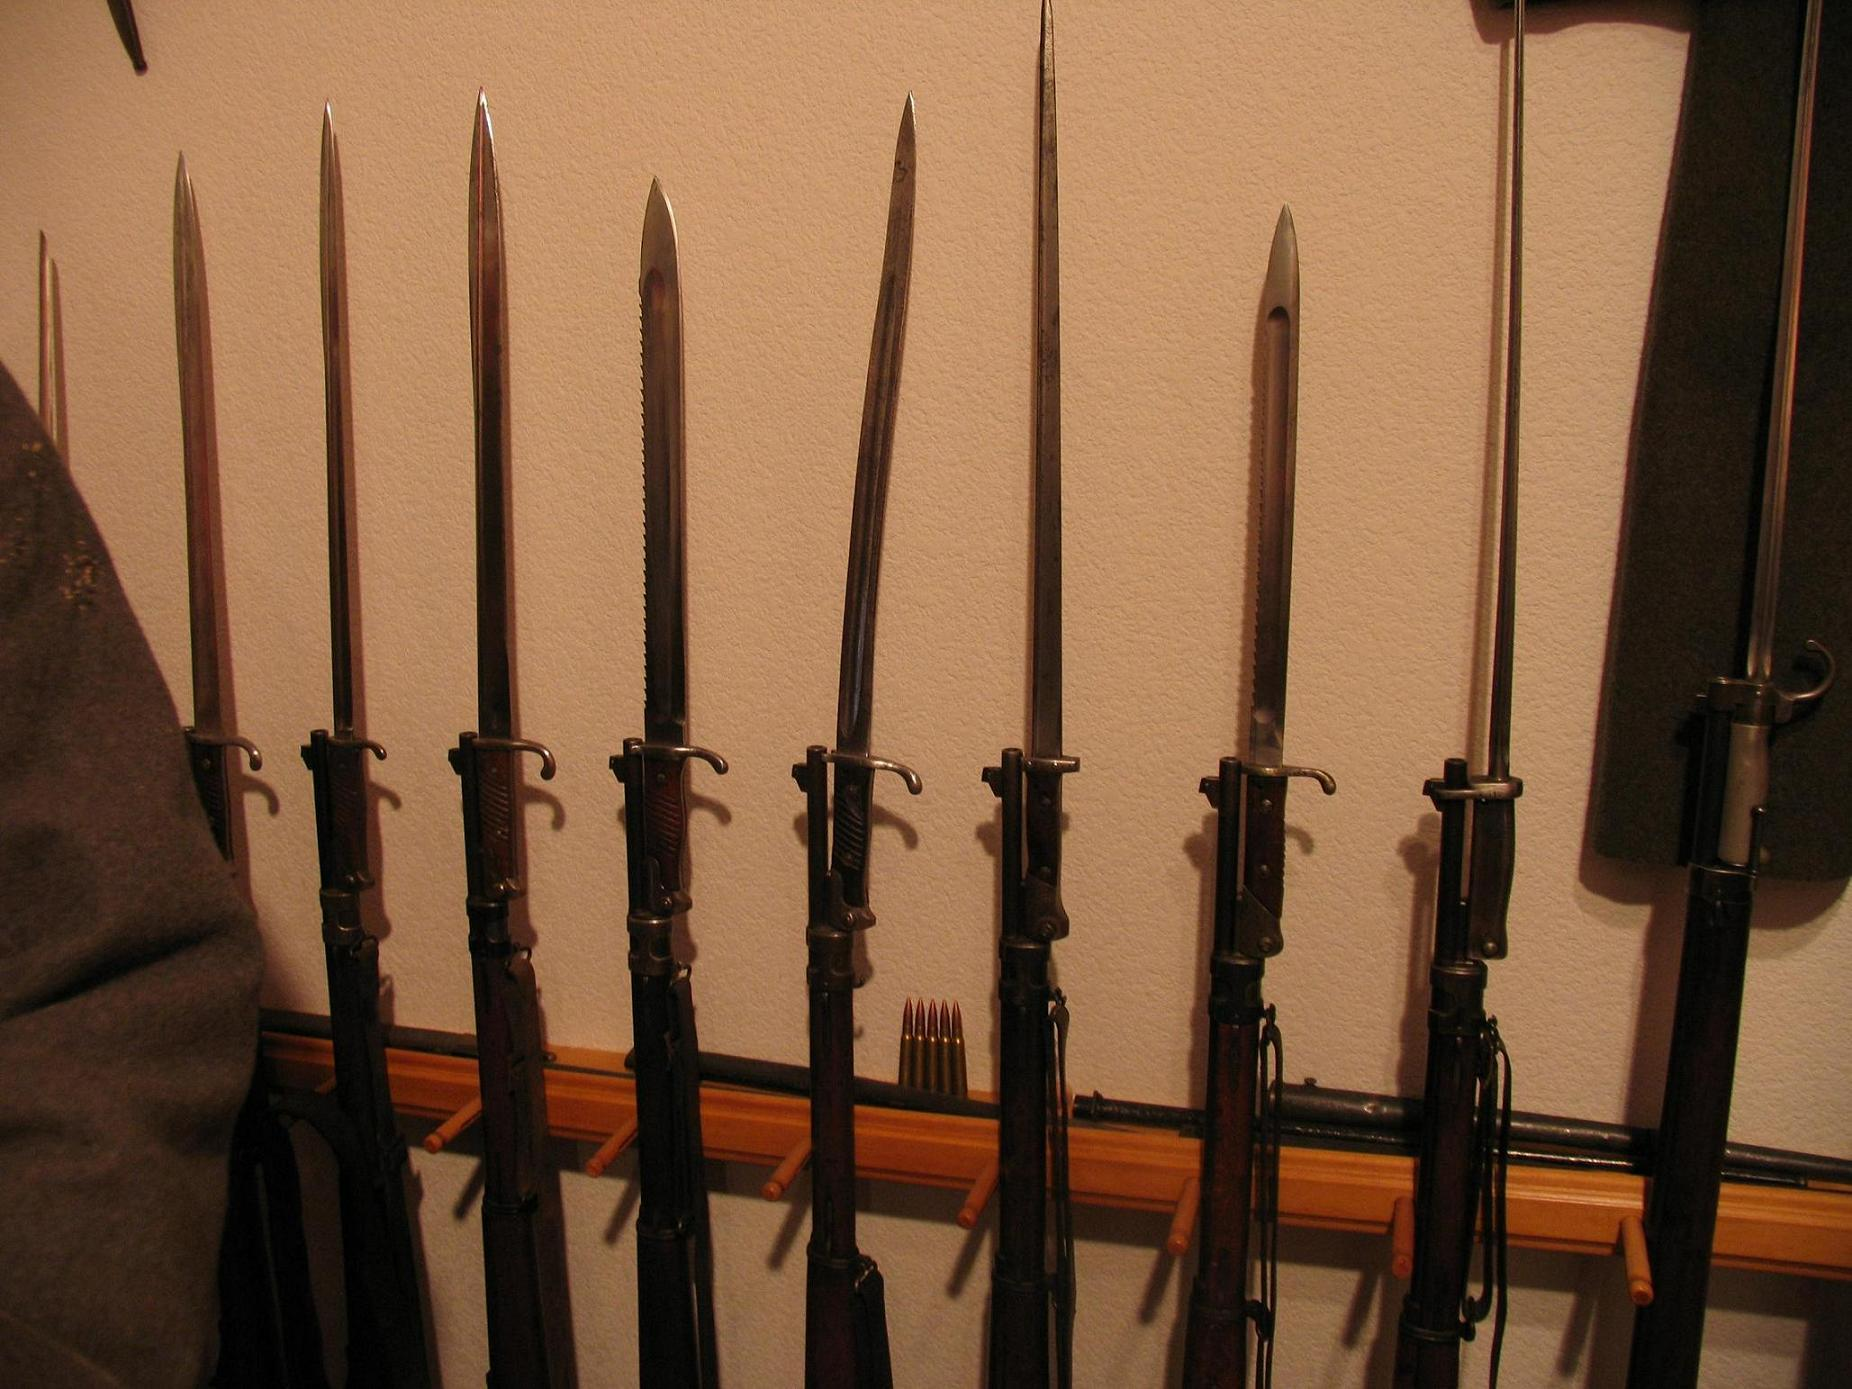 German WWI Bayonets - Section 3 - 2 Reduced.JPG